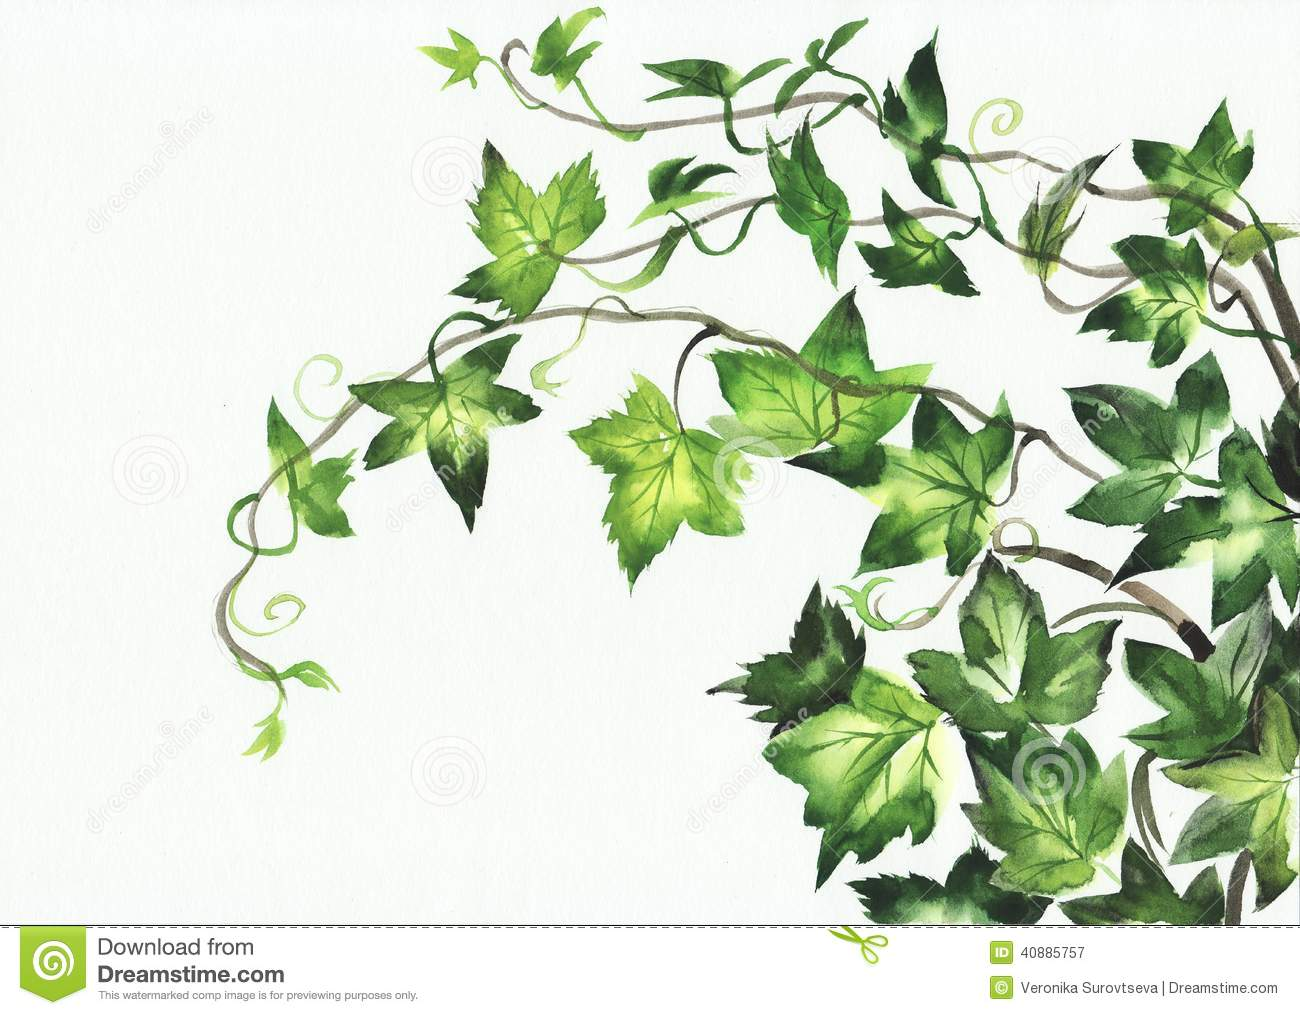 Watercolor painting of young ivy branches isolated on white.